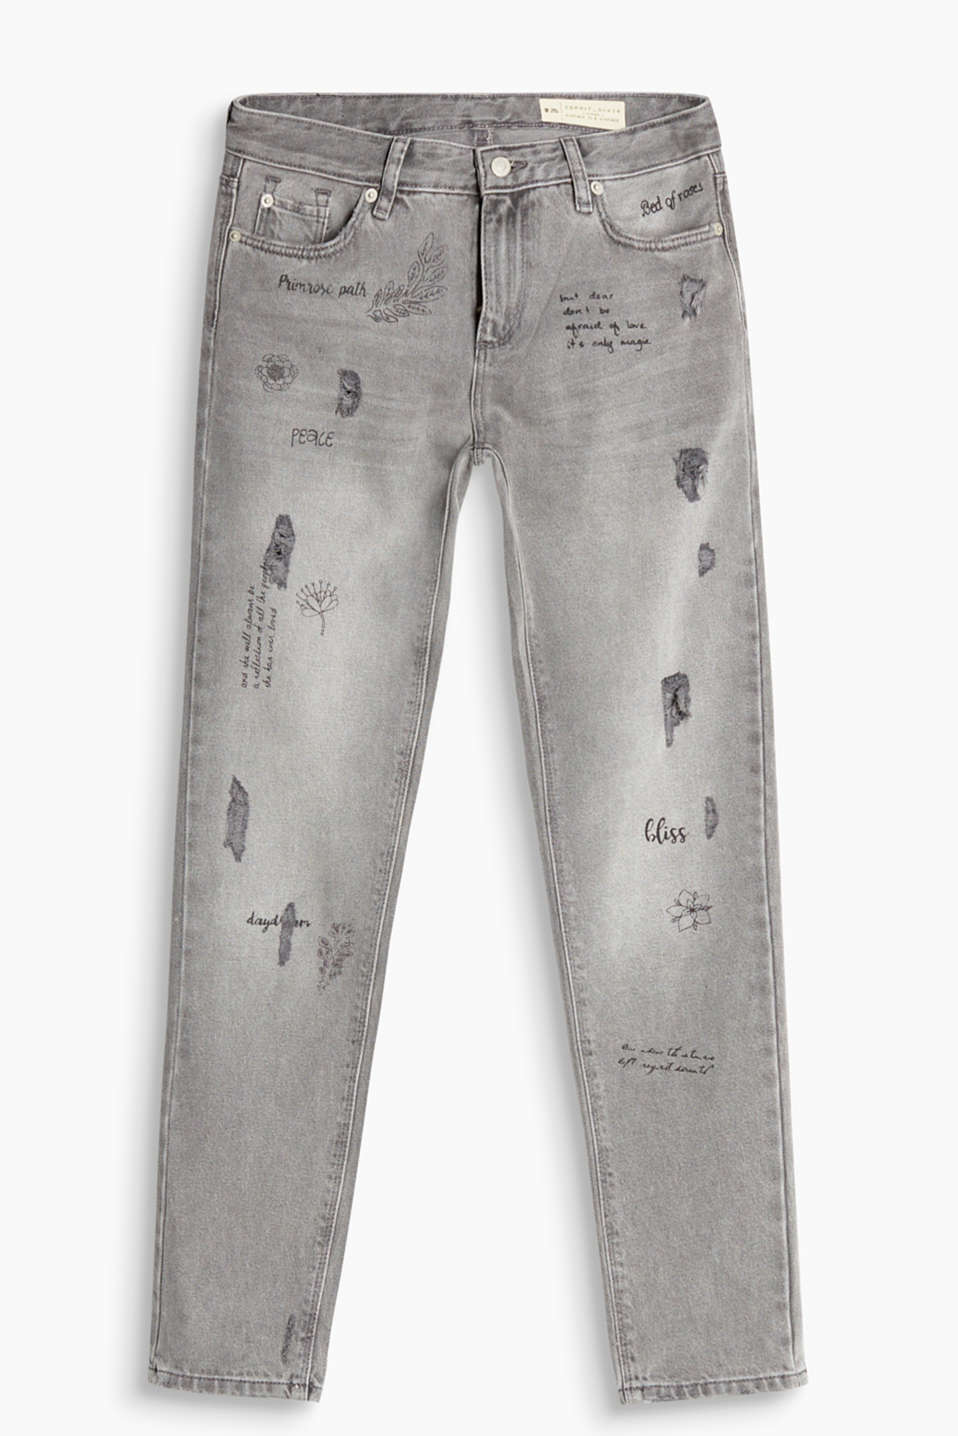 Vintage jeans made of strong cotton denim with pretty prints and heavy vintage effects